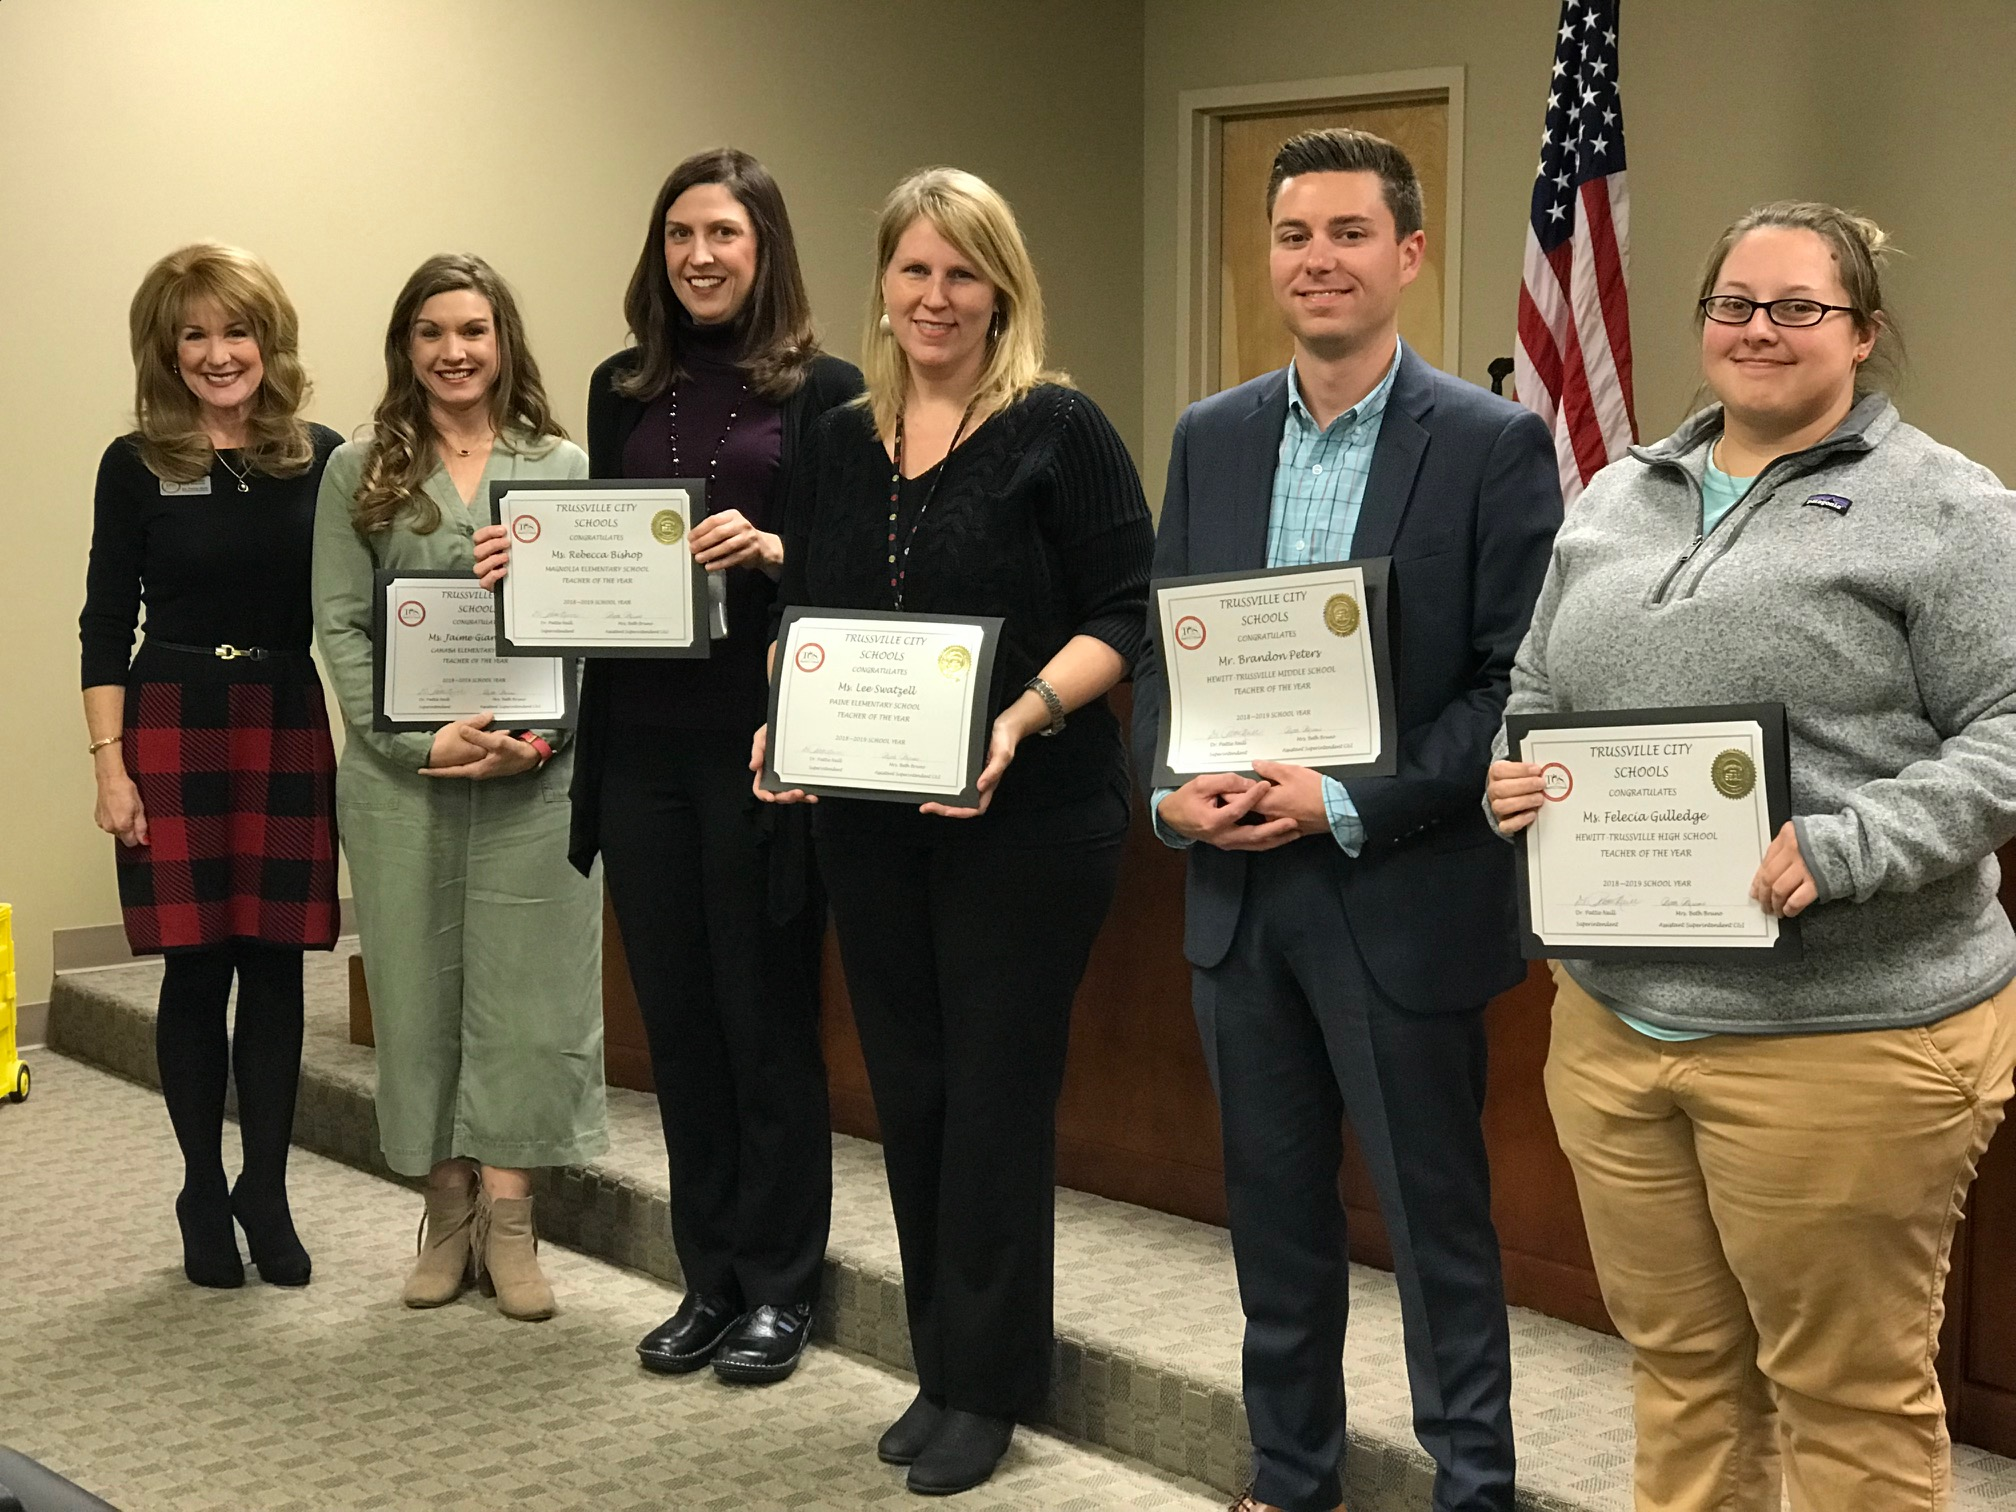 Trussville City Schools Board of Education recognizes outstanding teachers of the year